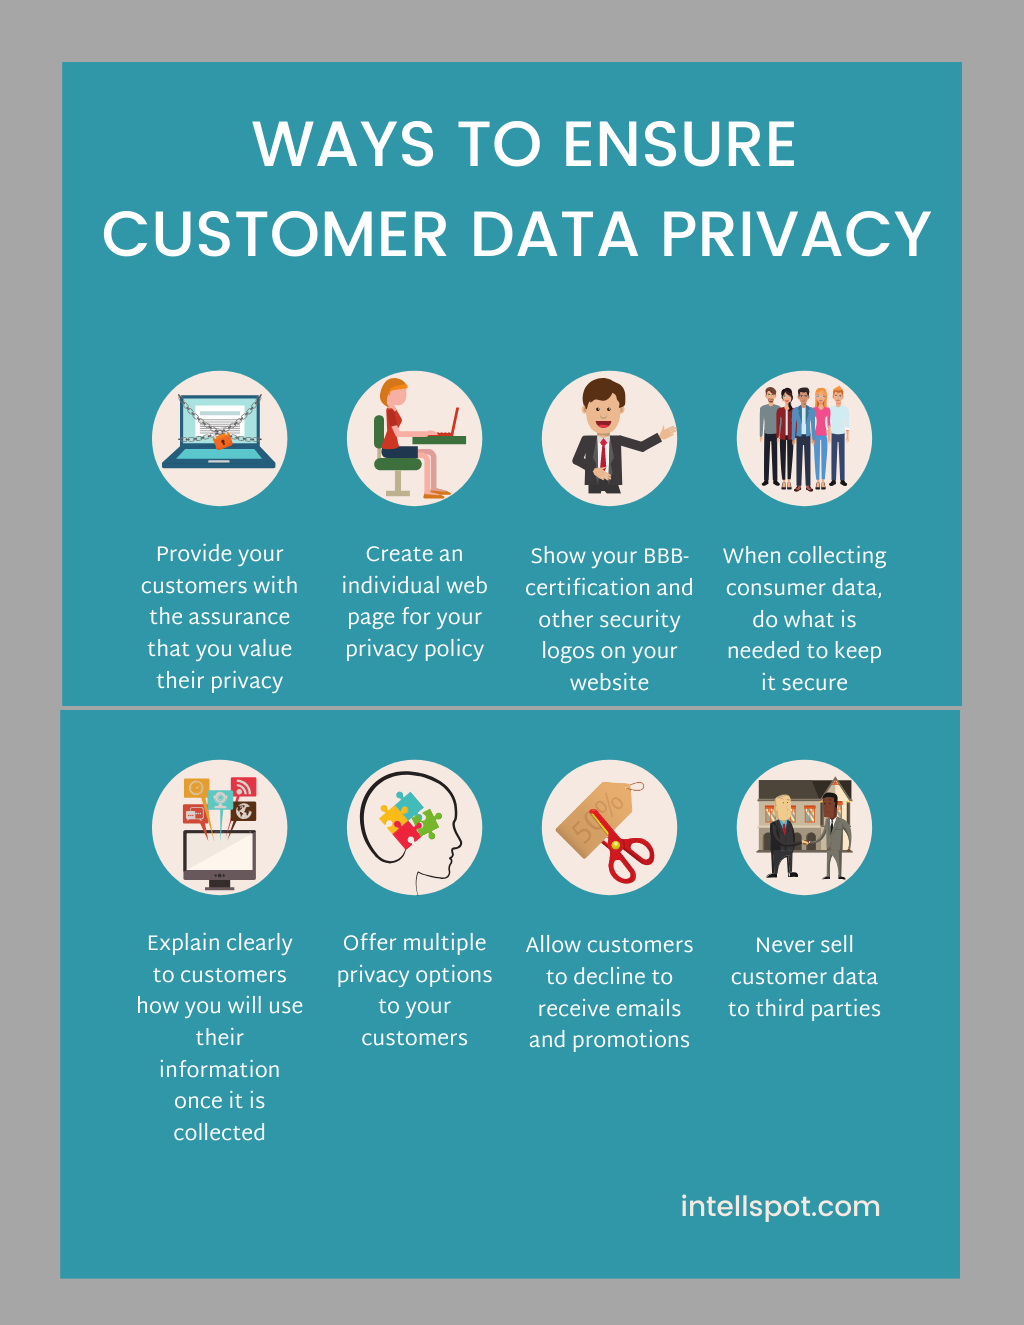 Ways To Ensure Customer Data Privacy - an infographic